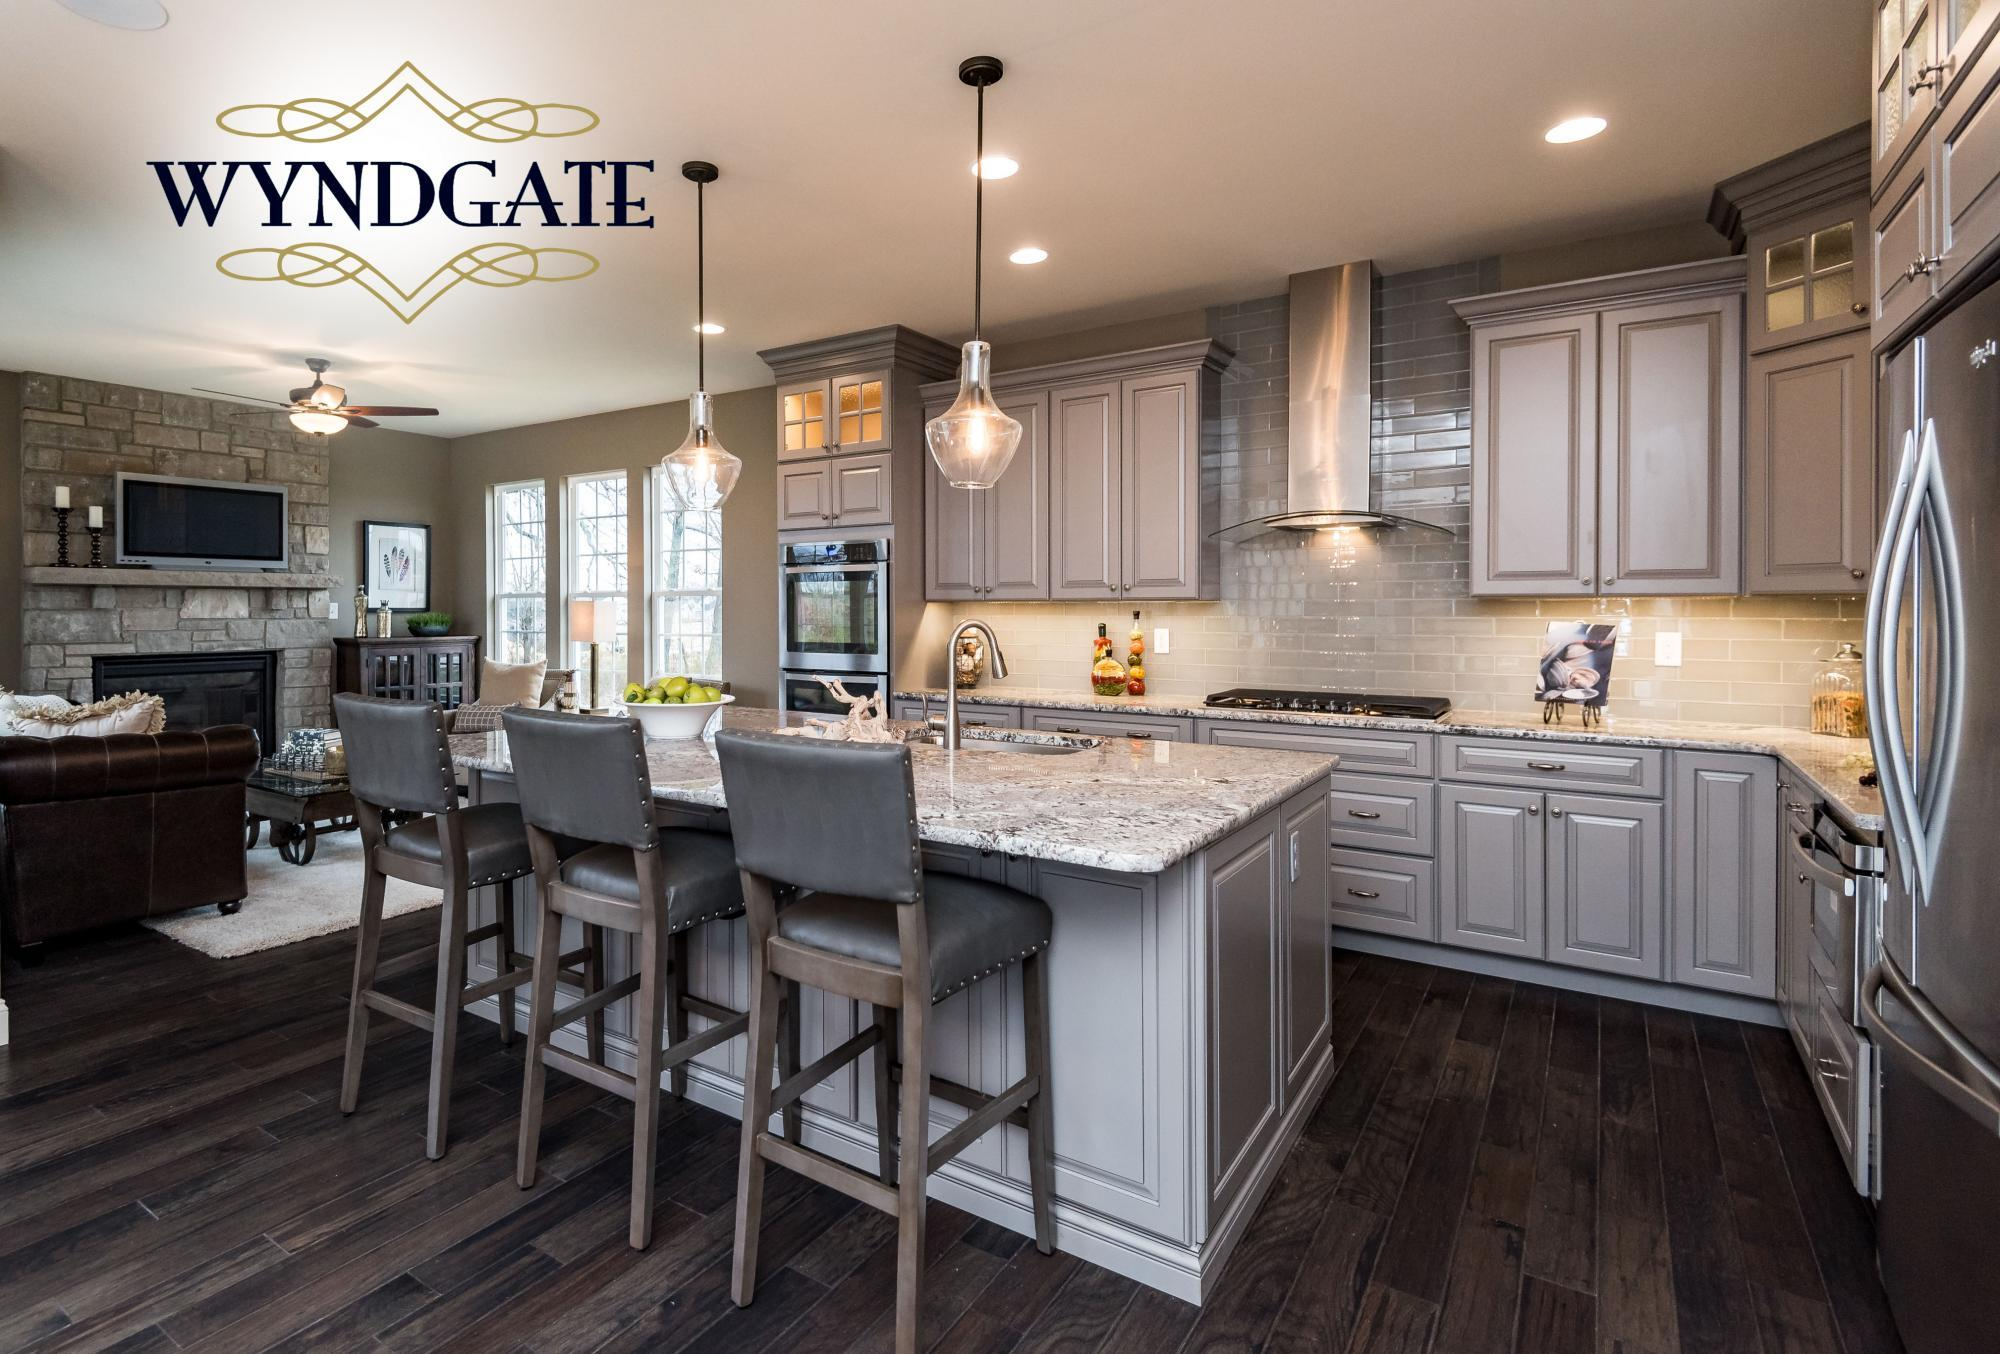 Single Family for Active at Wyndham - Heritage 403 Long Gate Ct. Wentzville, Missouri 63385 United States